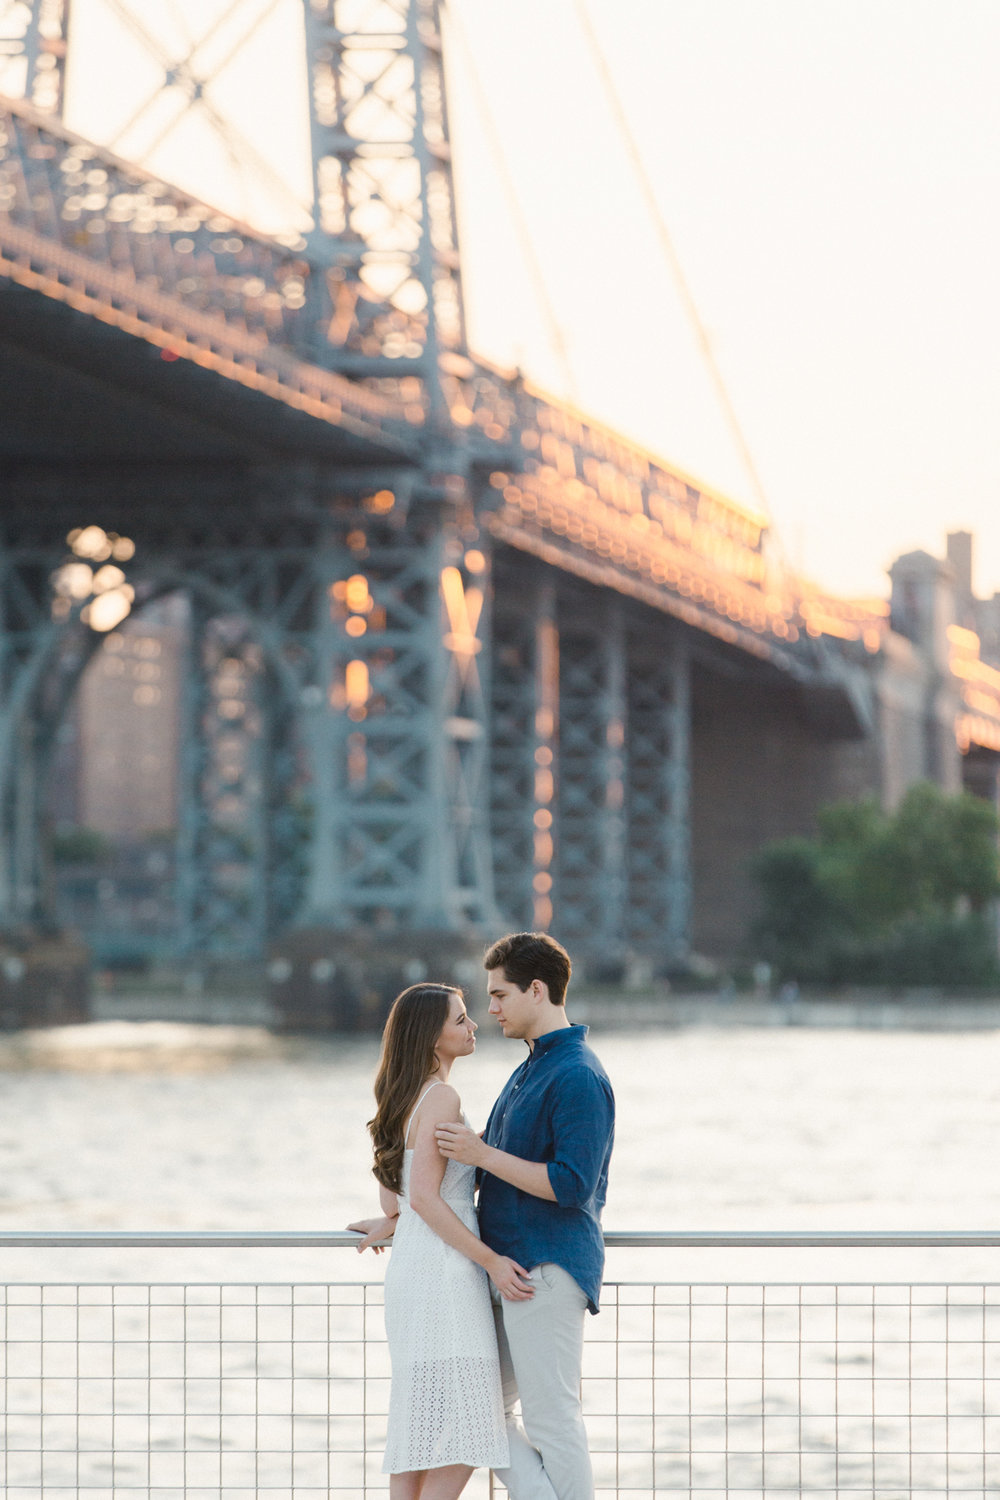 NYC-engagement-Photos-Photographer-Wedding-16.jpg